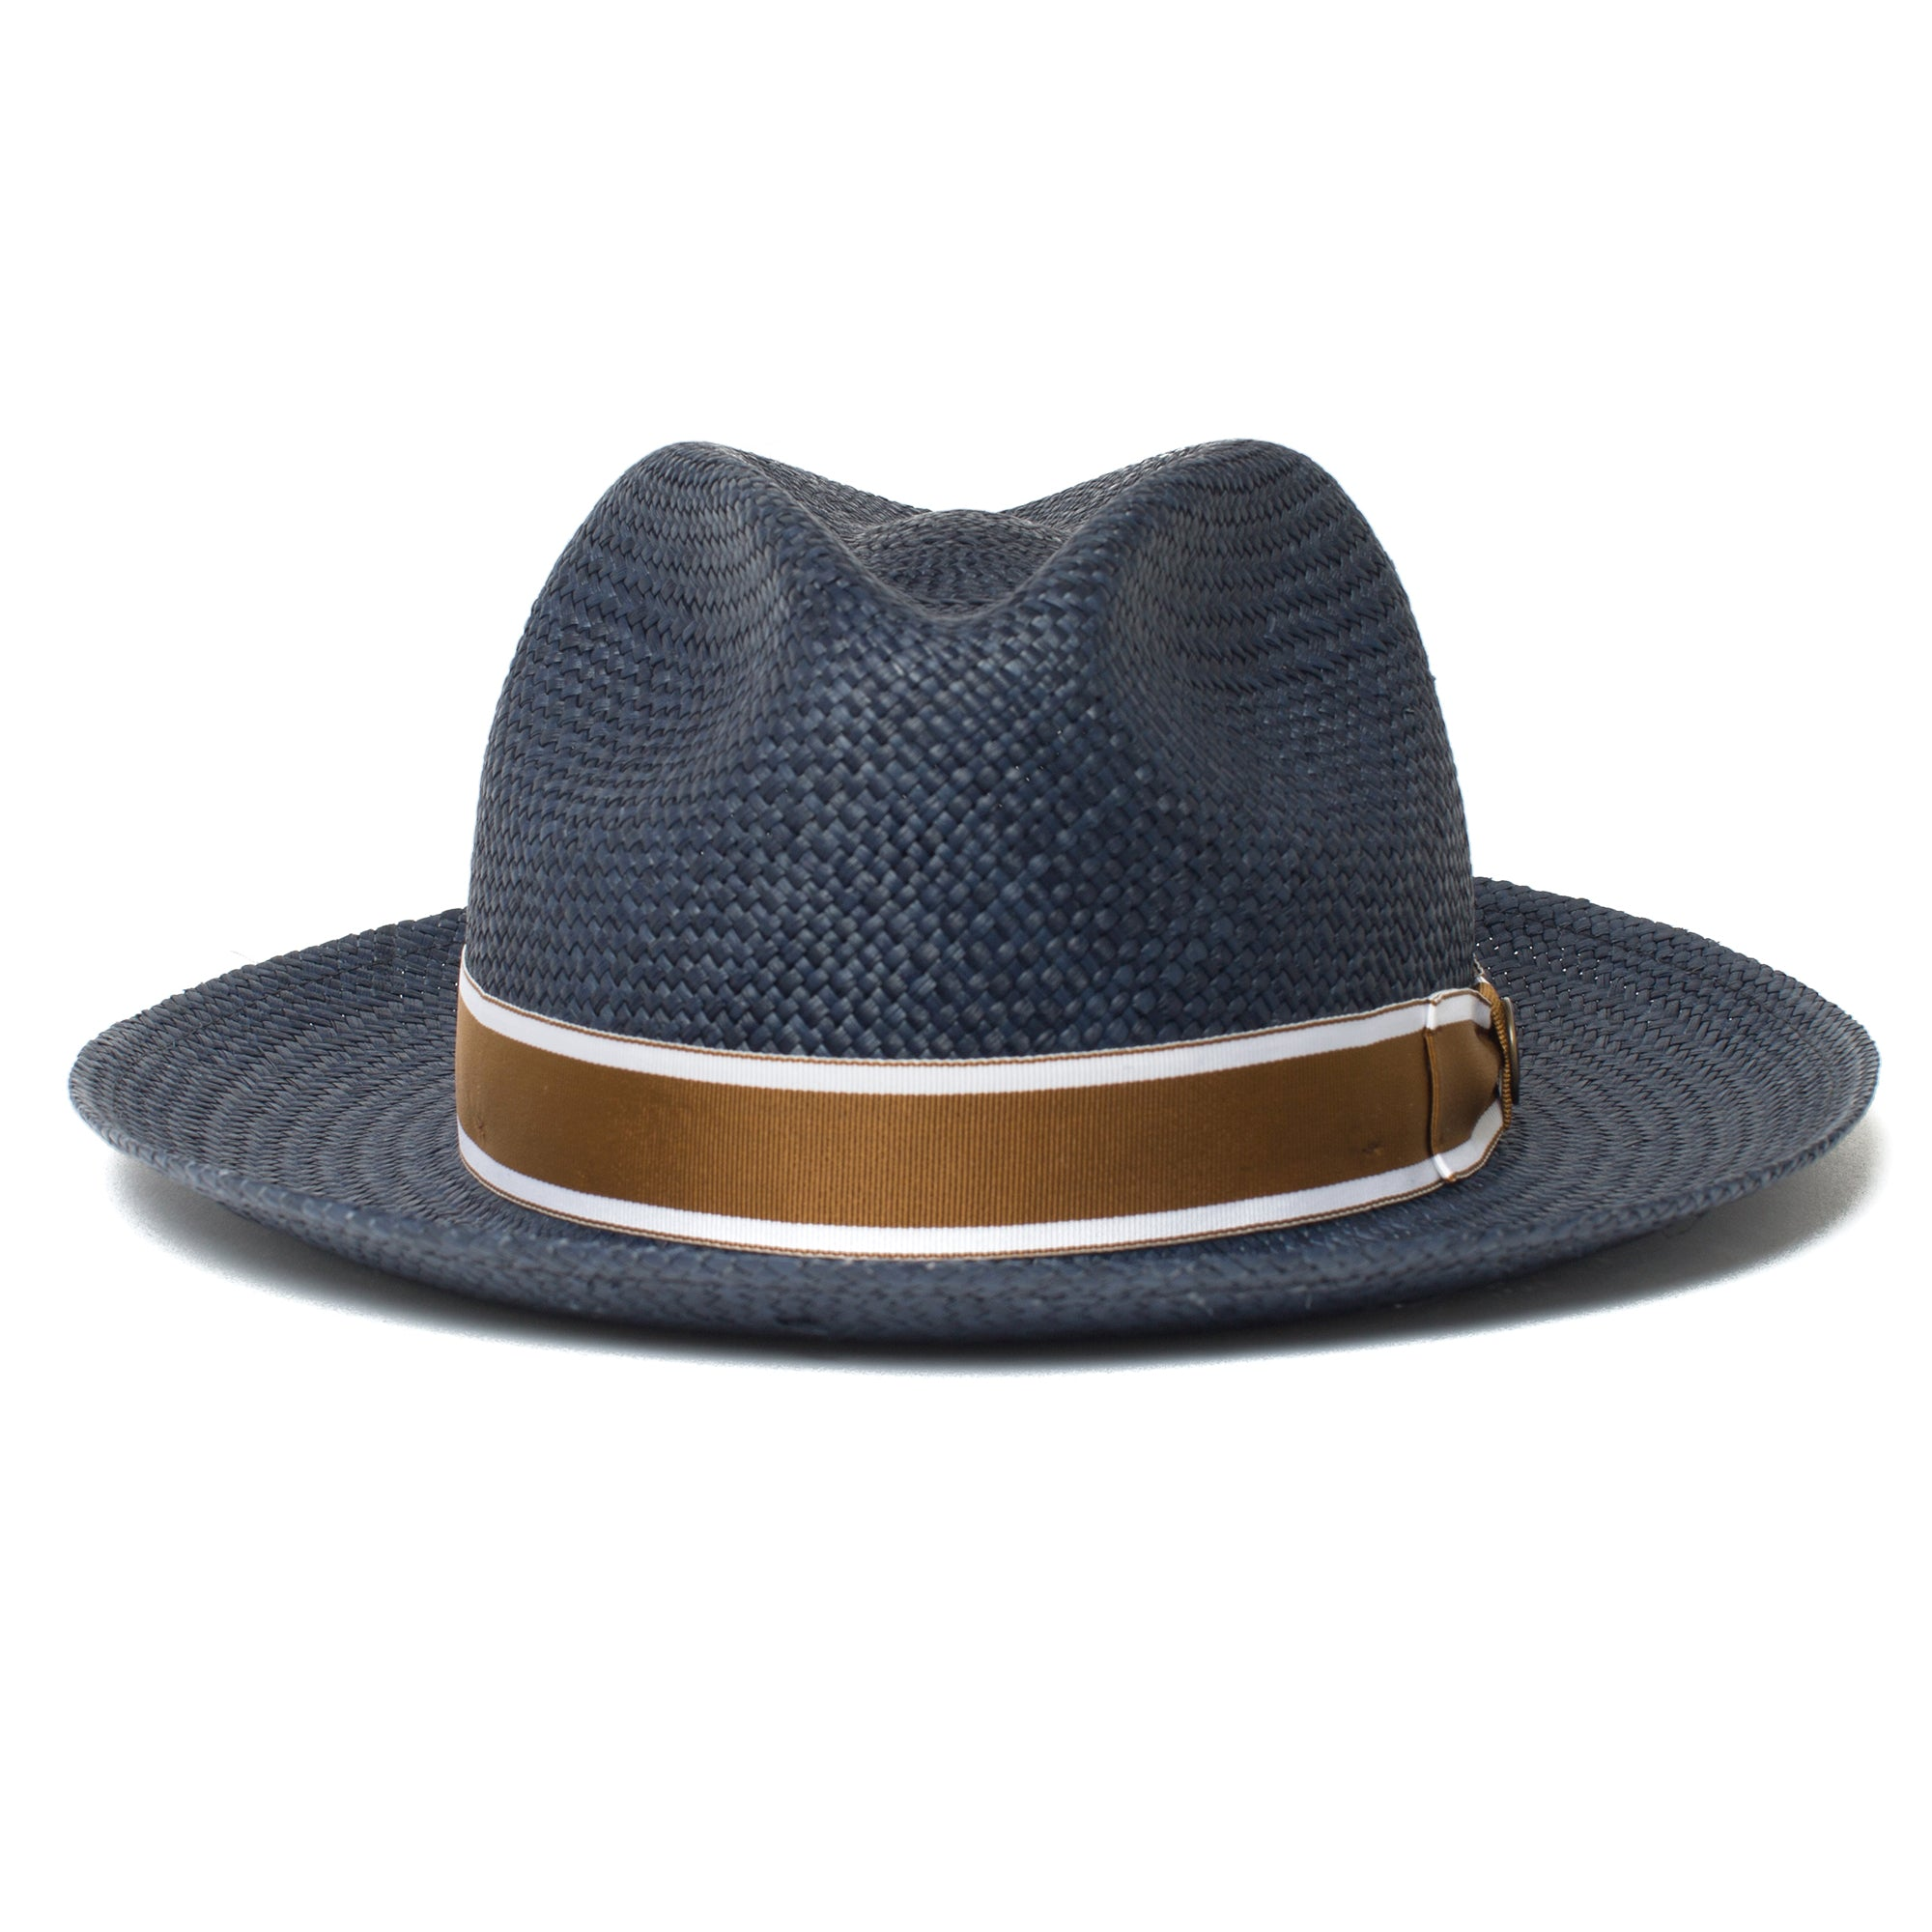 69cc13c813f62 Goorin Bros. southern coast center dent wide brim straw fedora hat Navy  front view